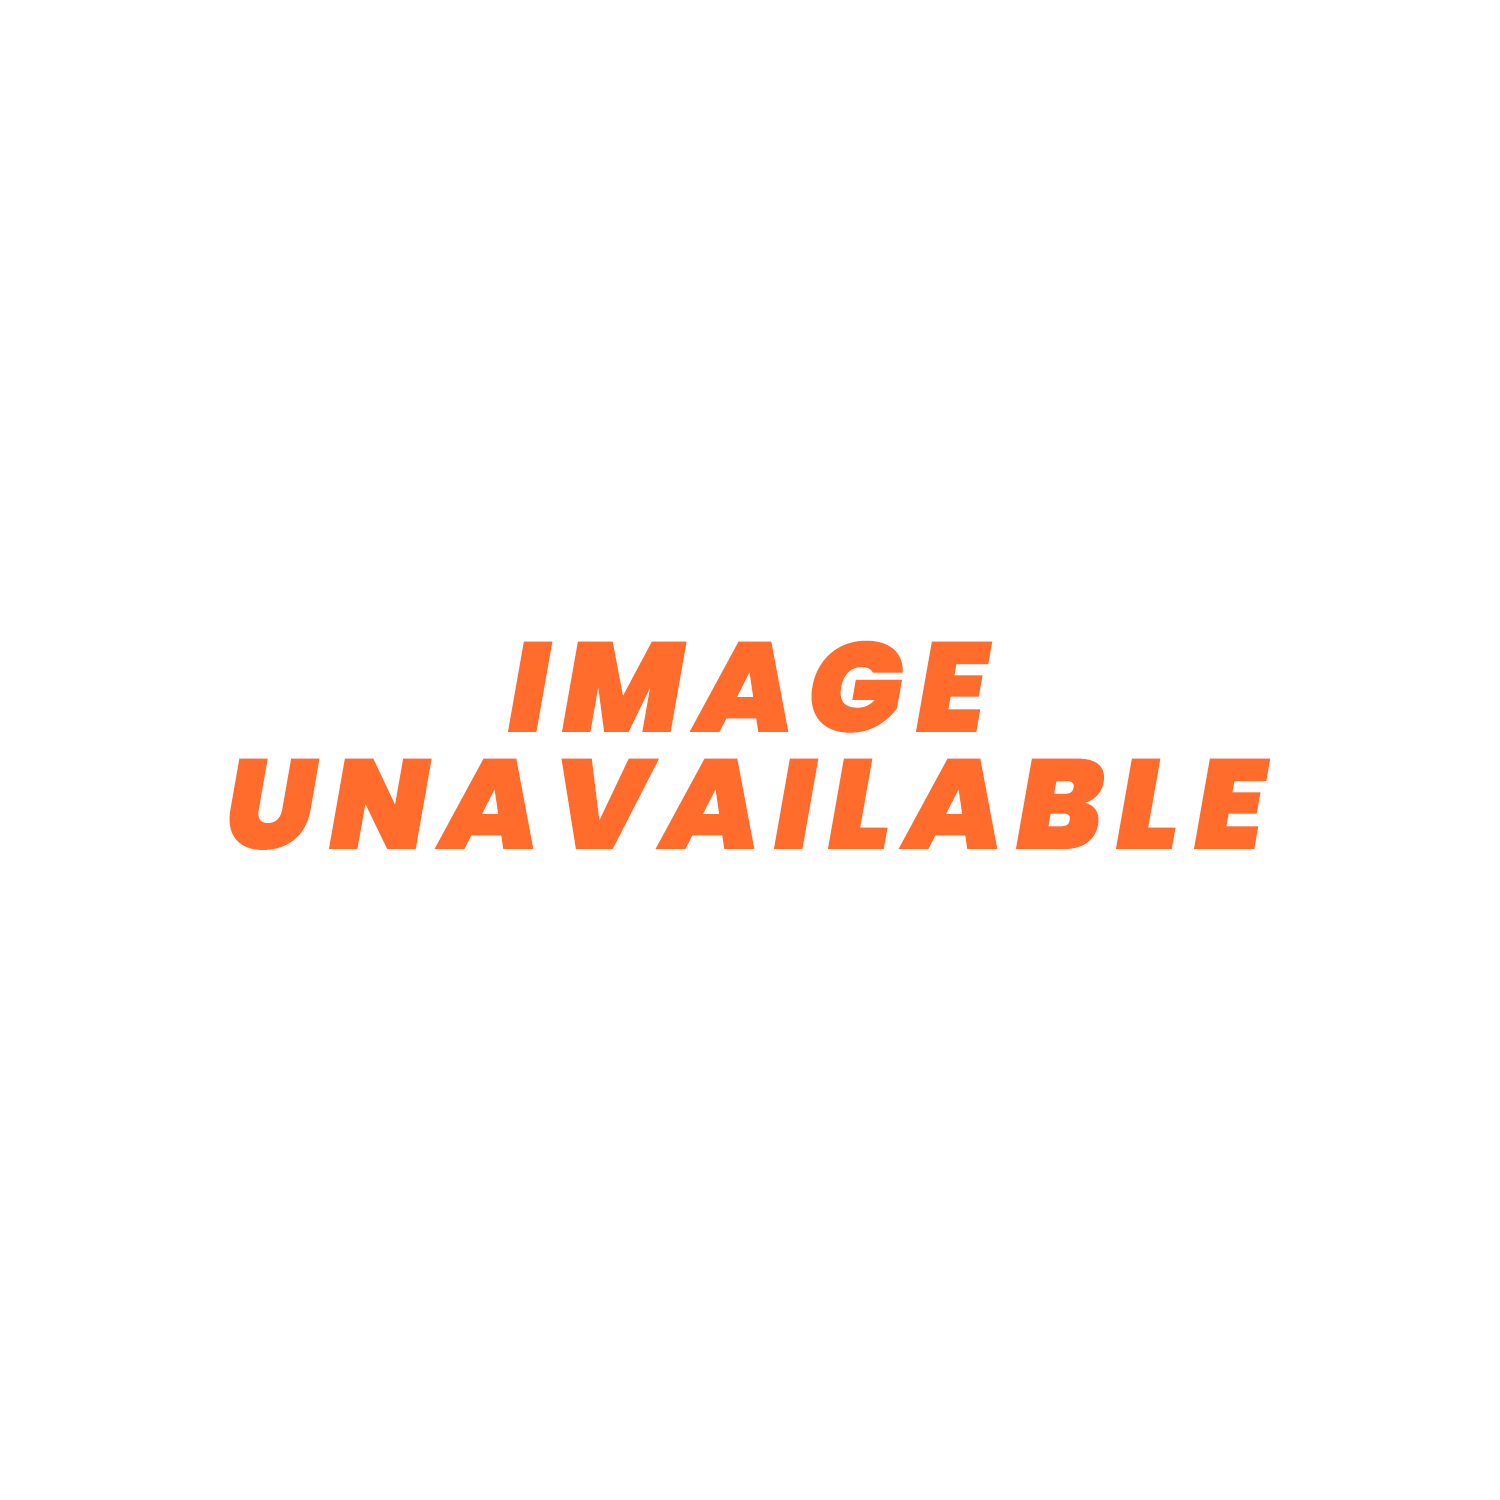 065 Strap Battery Tray - 177 x 248 mm